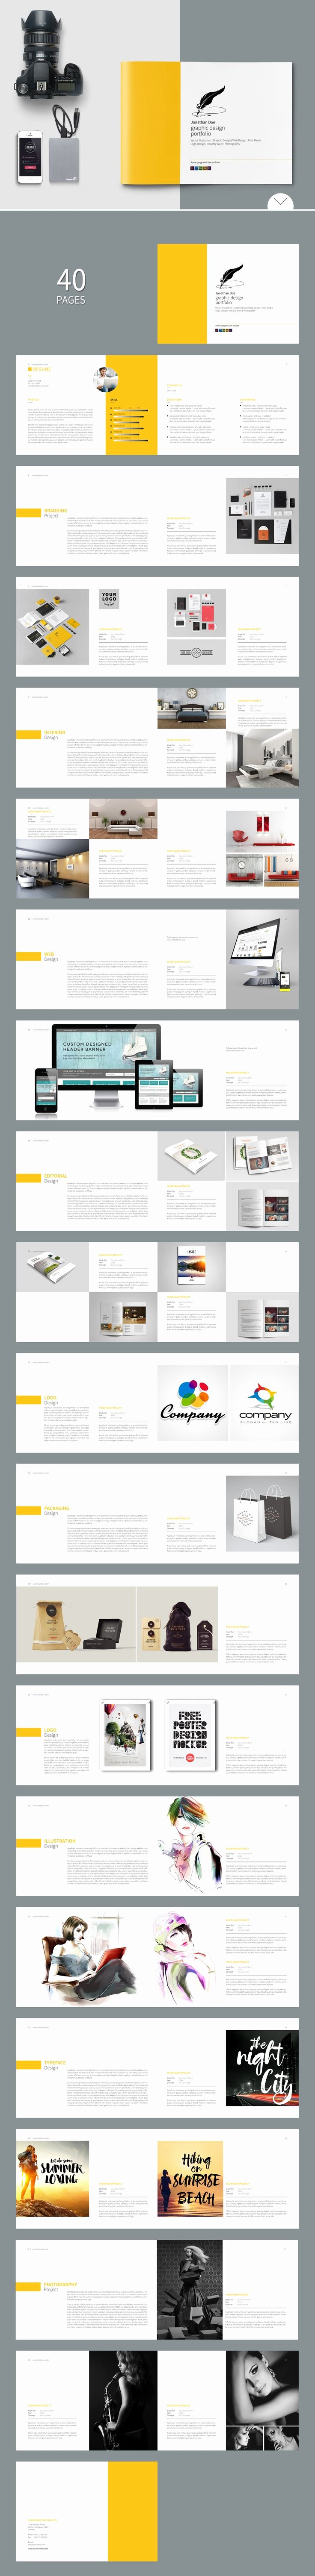 Architecture Portfolio Template Indesign Elegant Free Indesign Report Templates Graphic Design Print